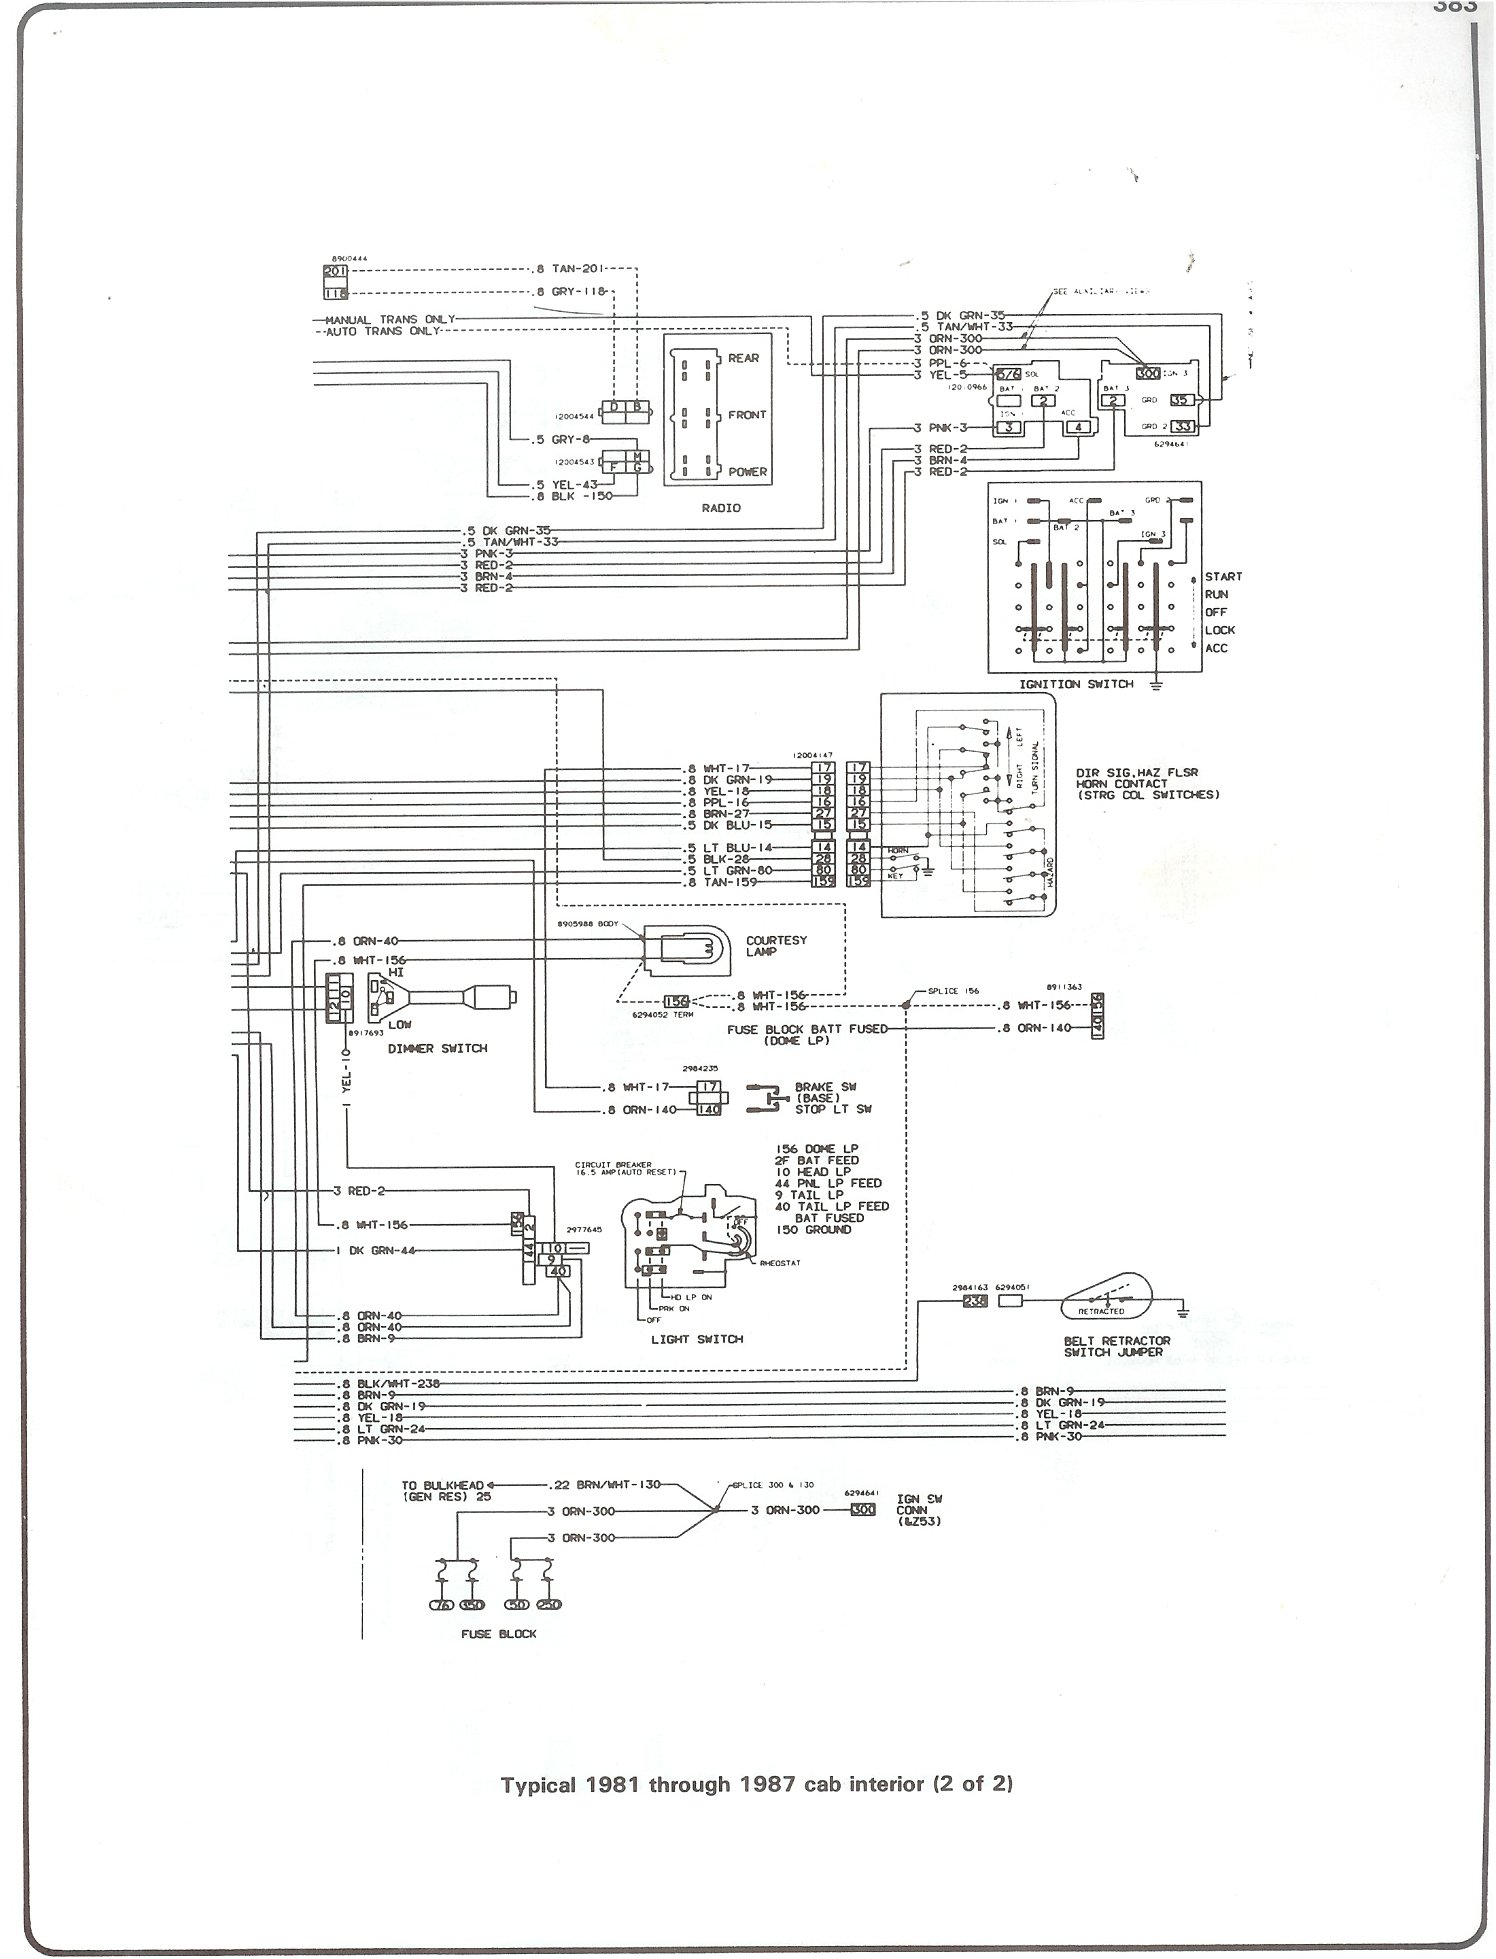 1960 chevy truck wiring harness 81 chevy truck wiring harness 85 2 8l chevy vacuum diagram wiring schematic | wiring library